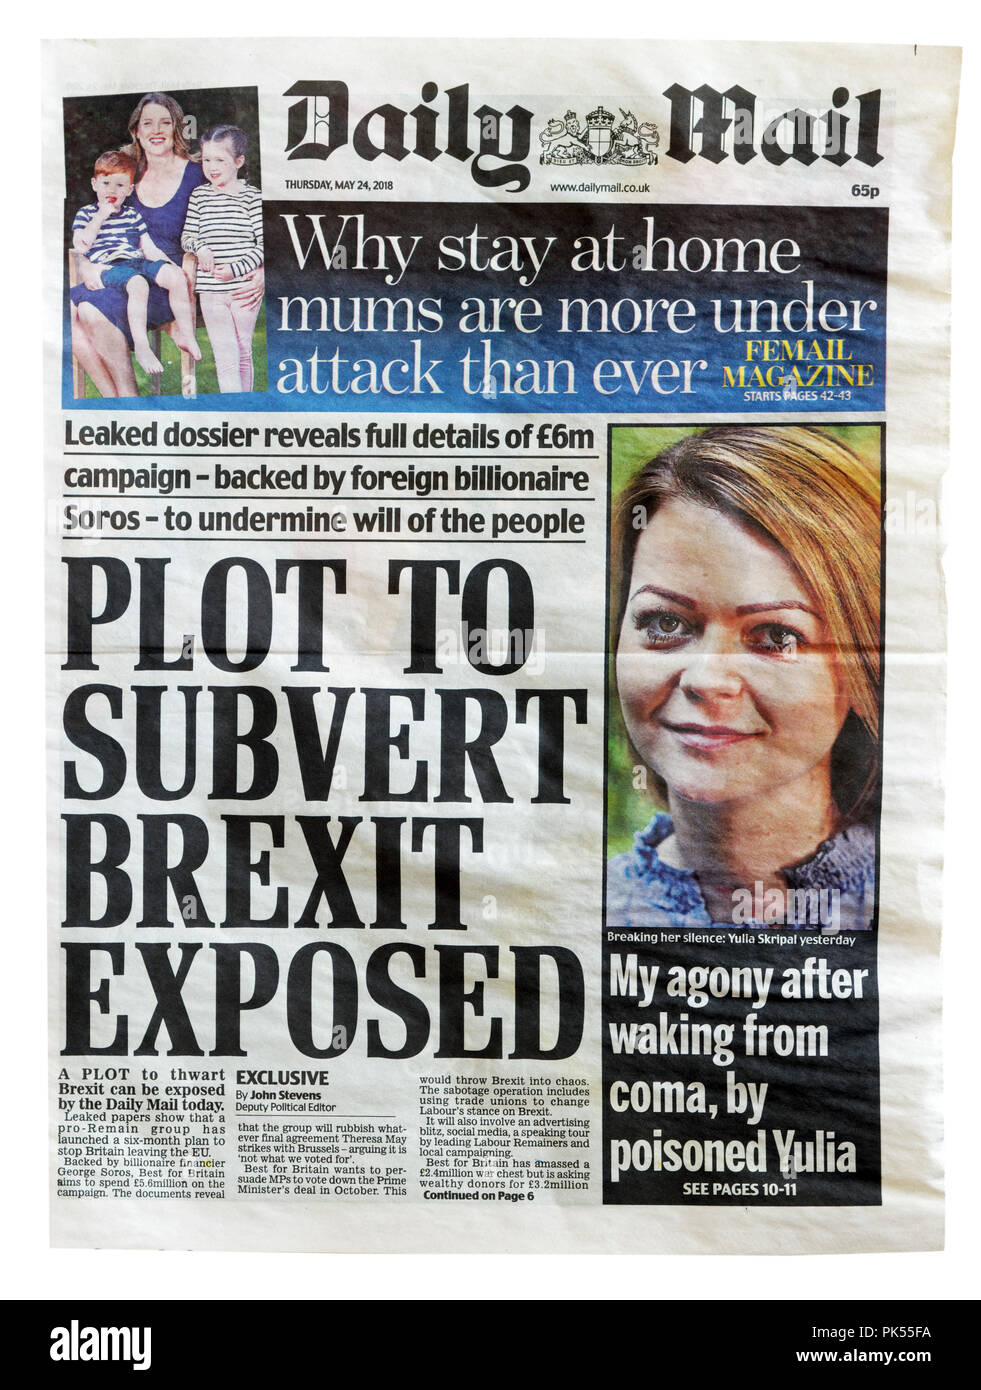 Front page of the Daily Mail with the headline Plot to Subvert Brexit Exposed, about attempts to stop Brexit and keep Britain in the EU - Stock Image